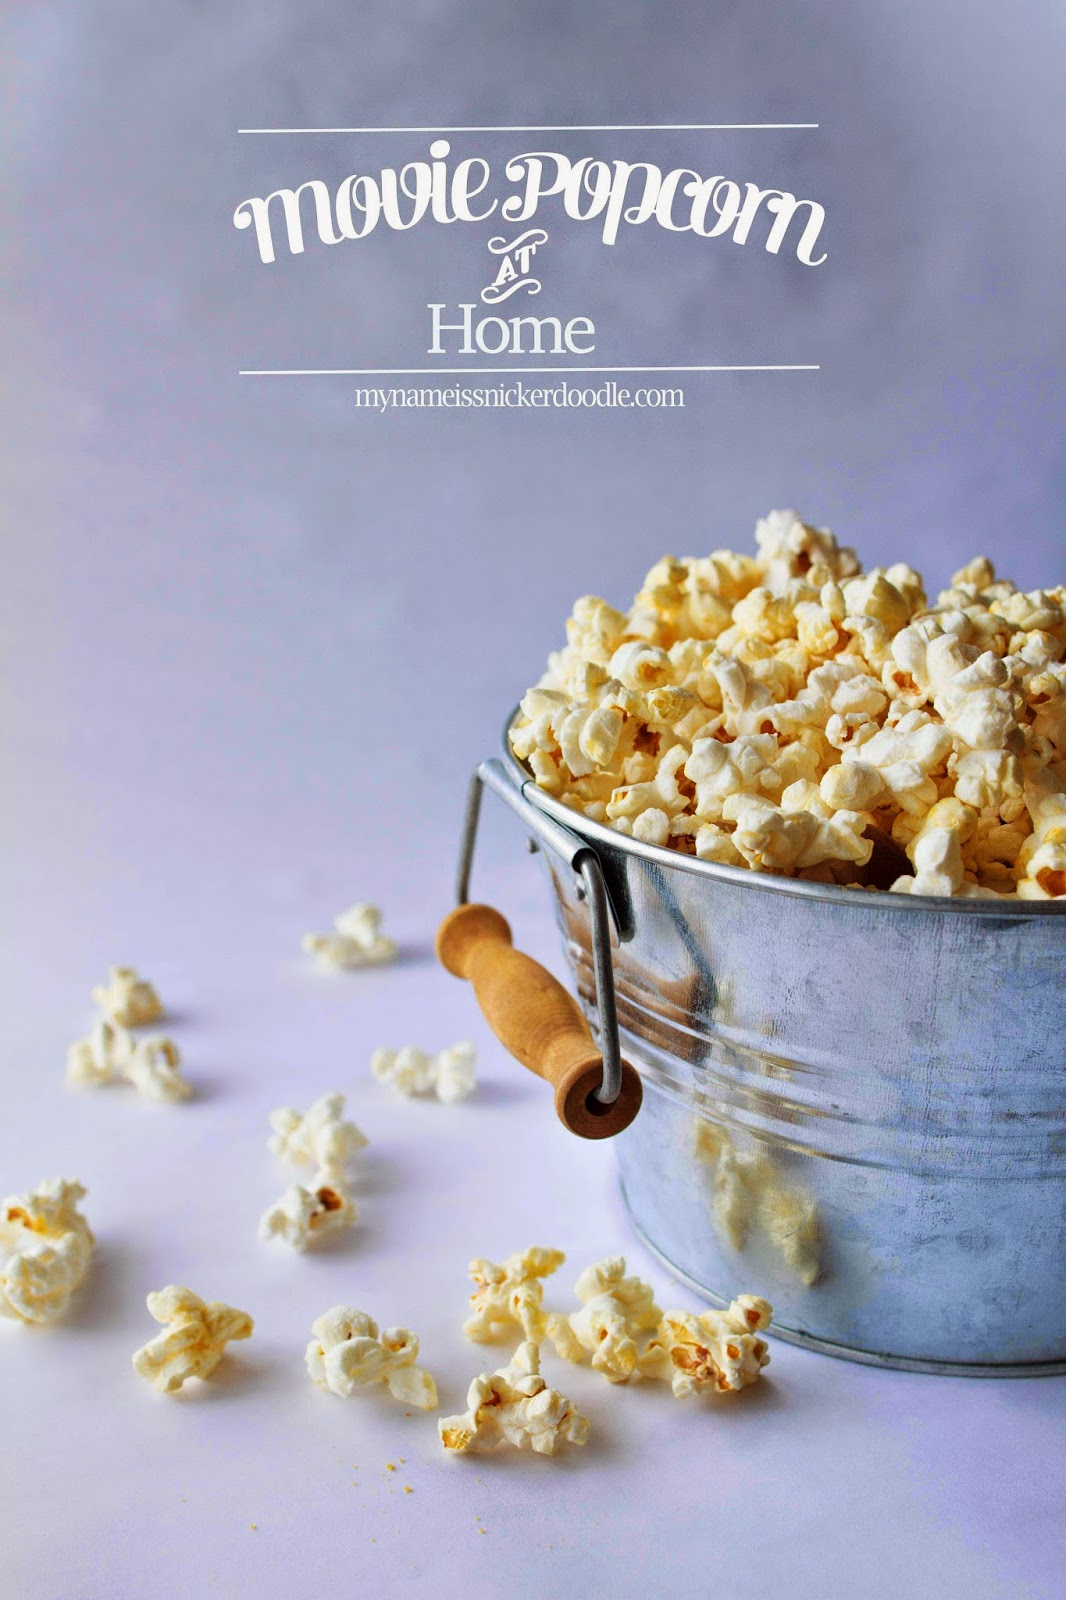 Make Movie Popcorn At Home | My Name Is Snickerdoodle